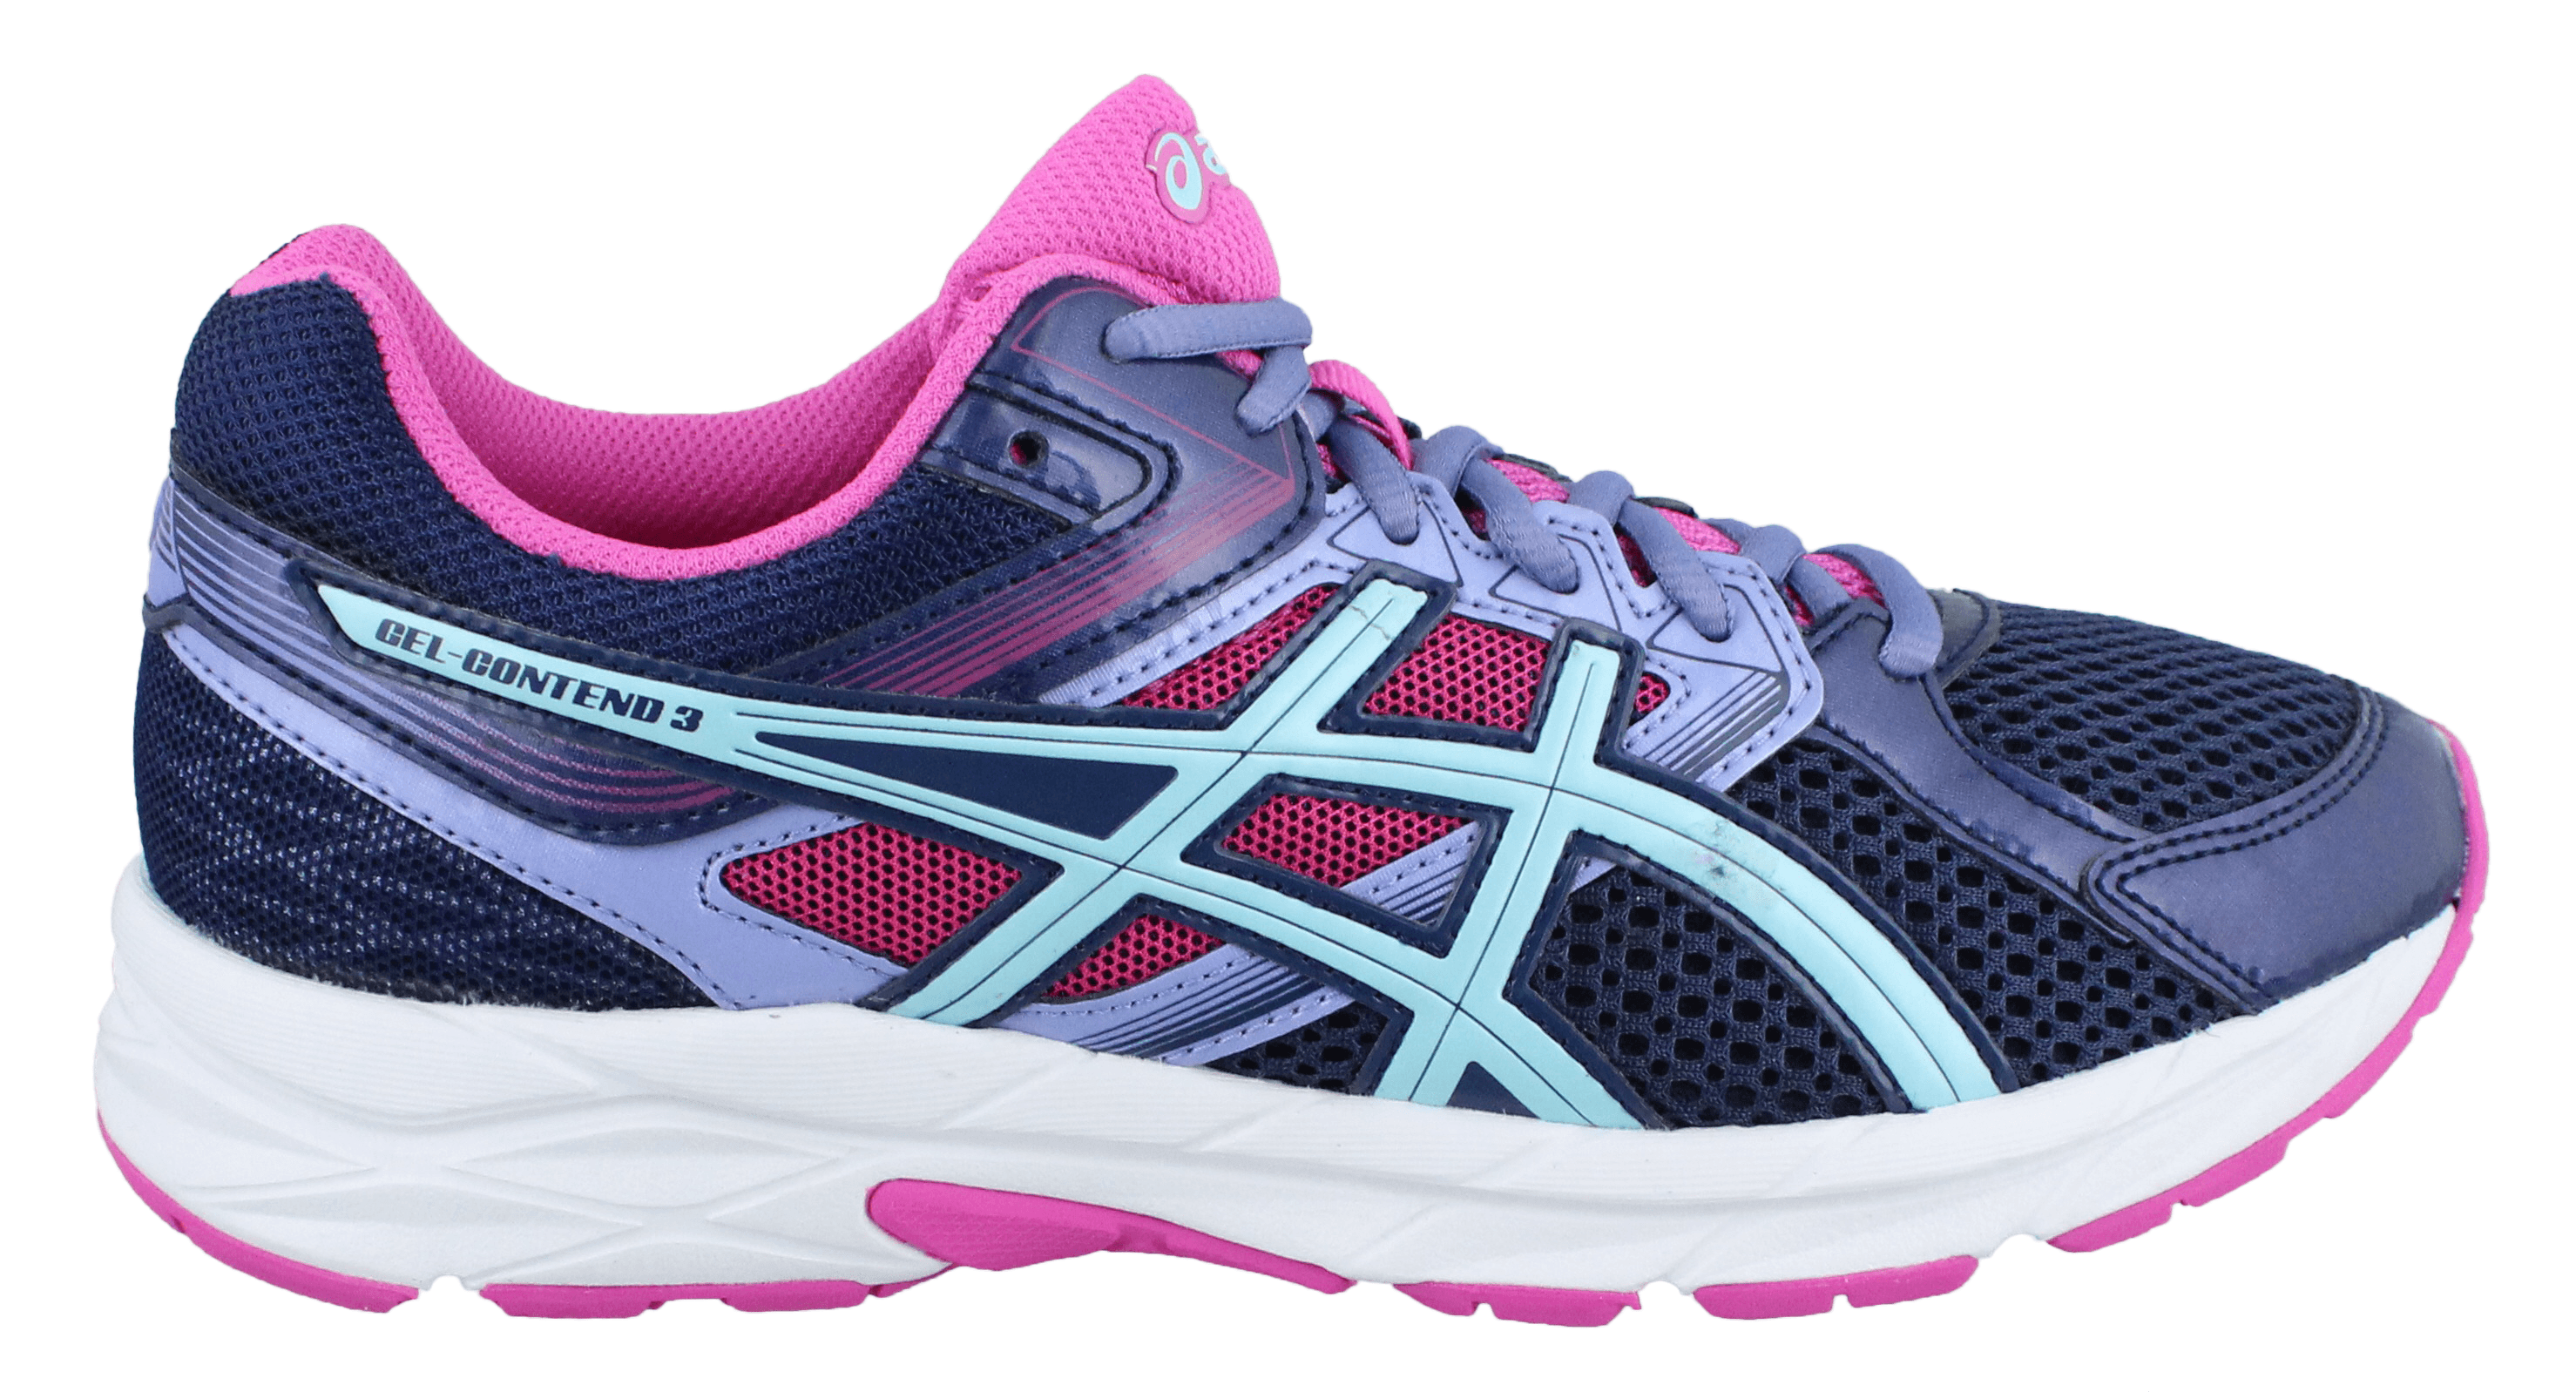 ASICS Asics Gel Contend 3 Women's Shoes Indigo BlueAqua SplashPink Glow